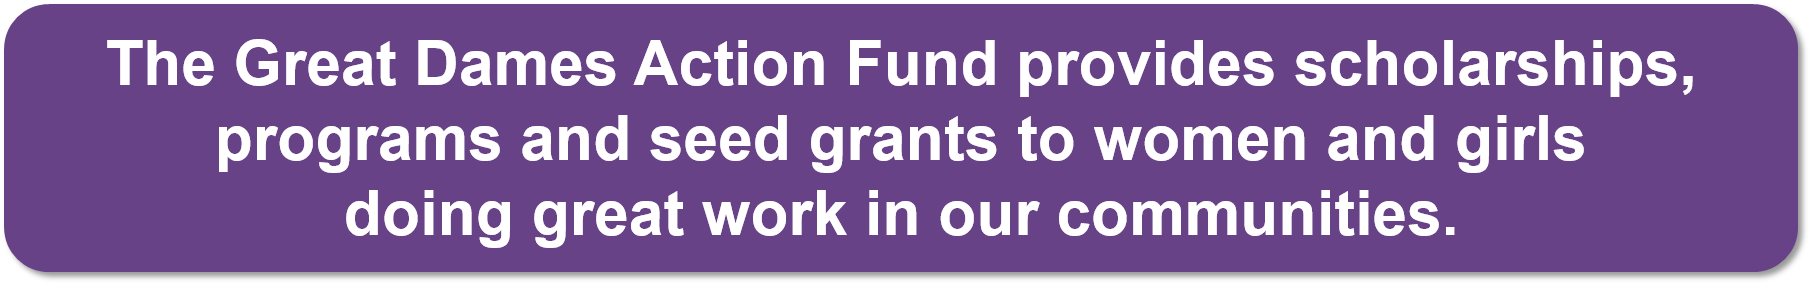 GD Action Fund 1.png